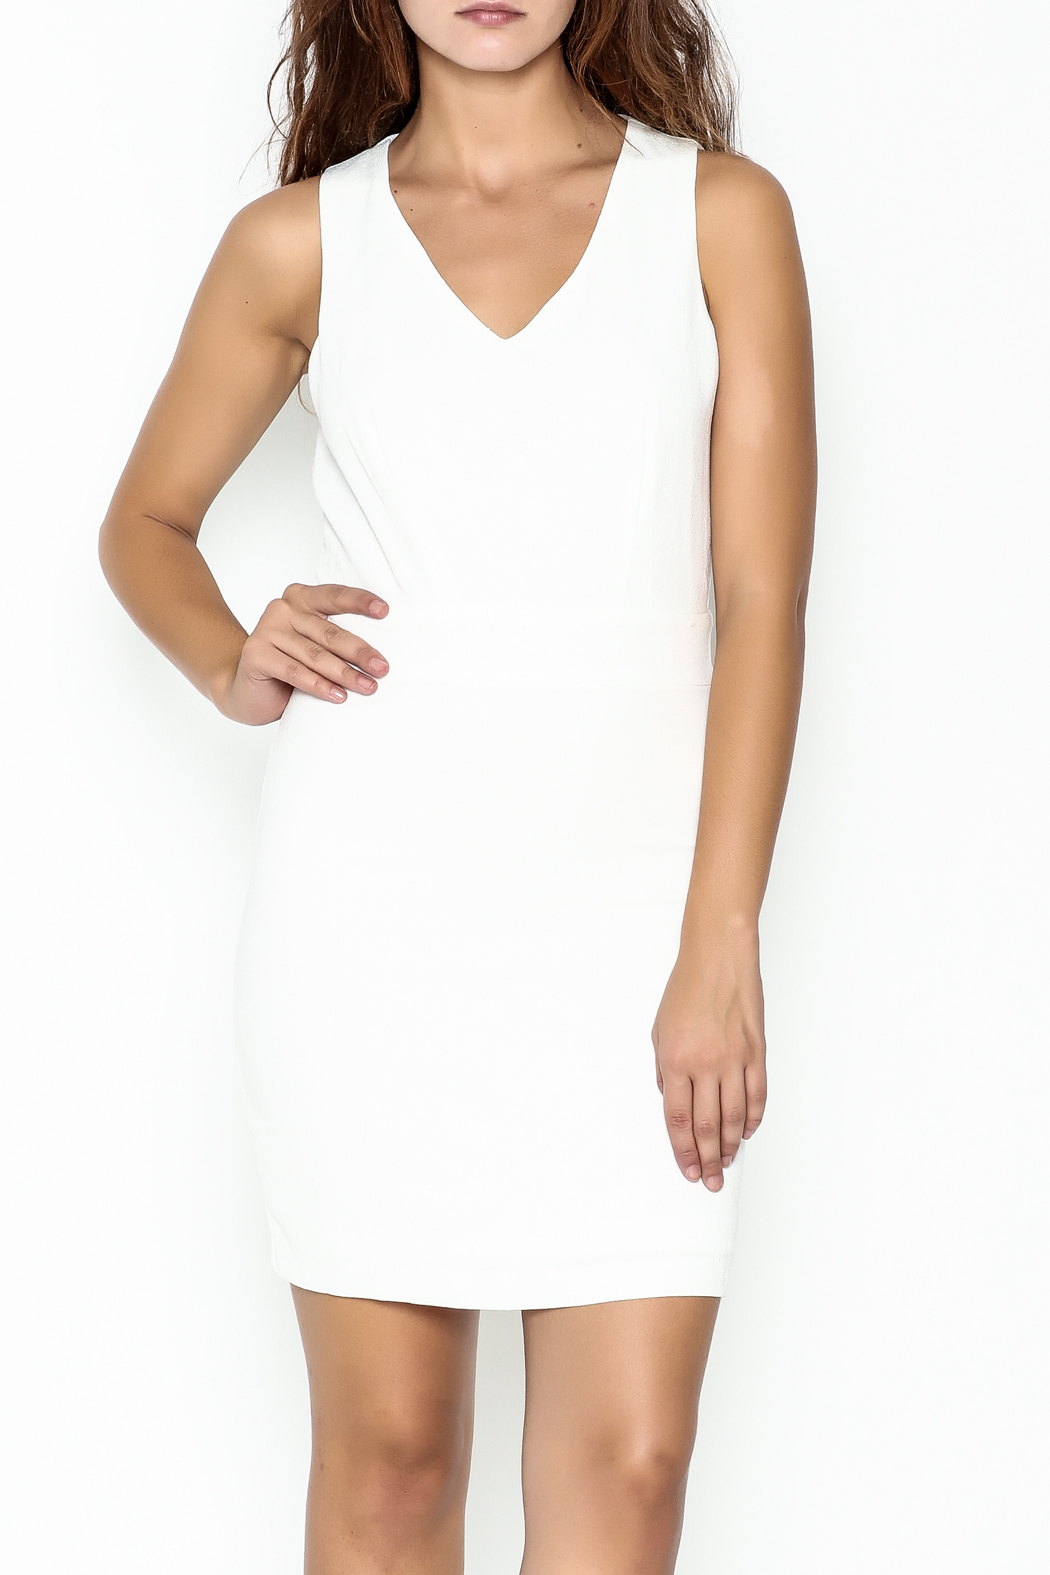 C. Luce White Stella Dress - Front Cropped Image